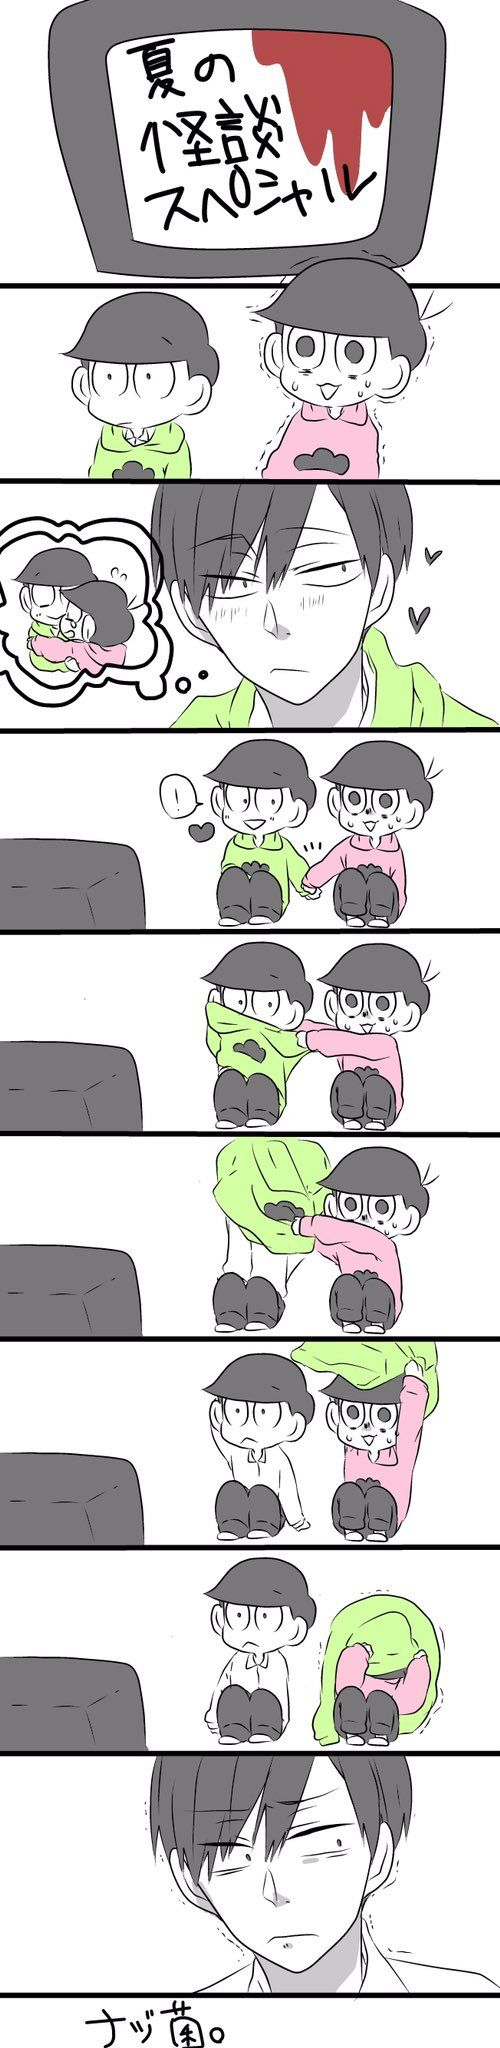 When Choro wants to be manly but Todo just wants the sweater